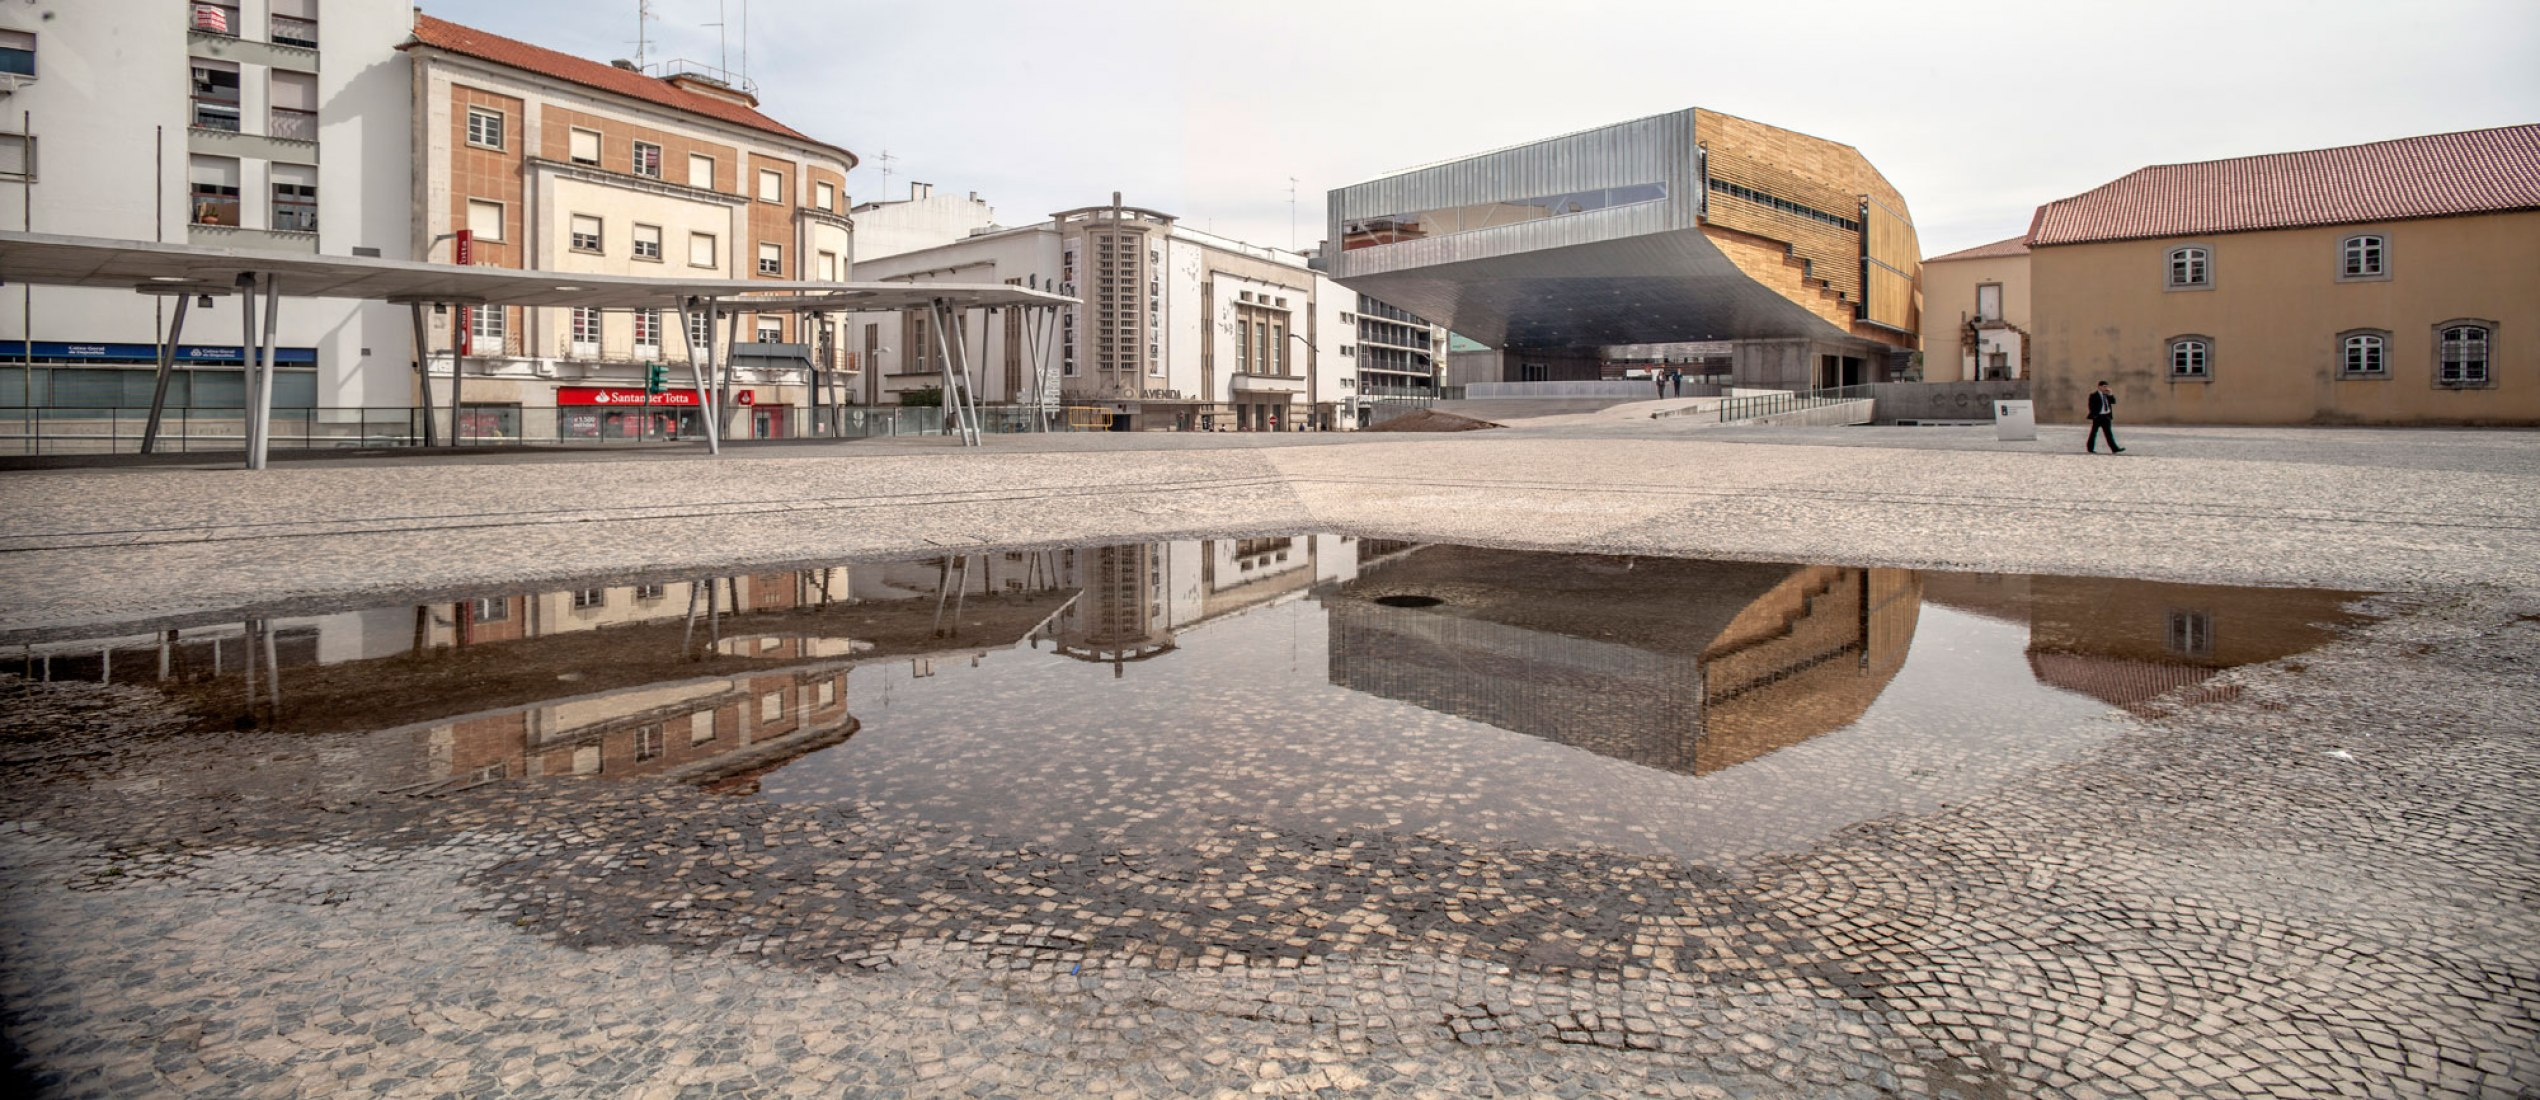 Cultural Center from the square. Cultural Center in Castelo Branco by Josep Lluis Mateo. Photography ©Adrià Goula.